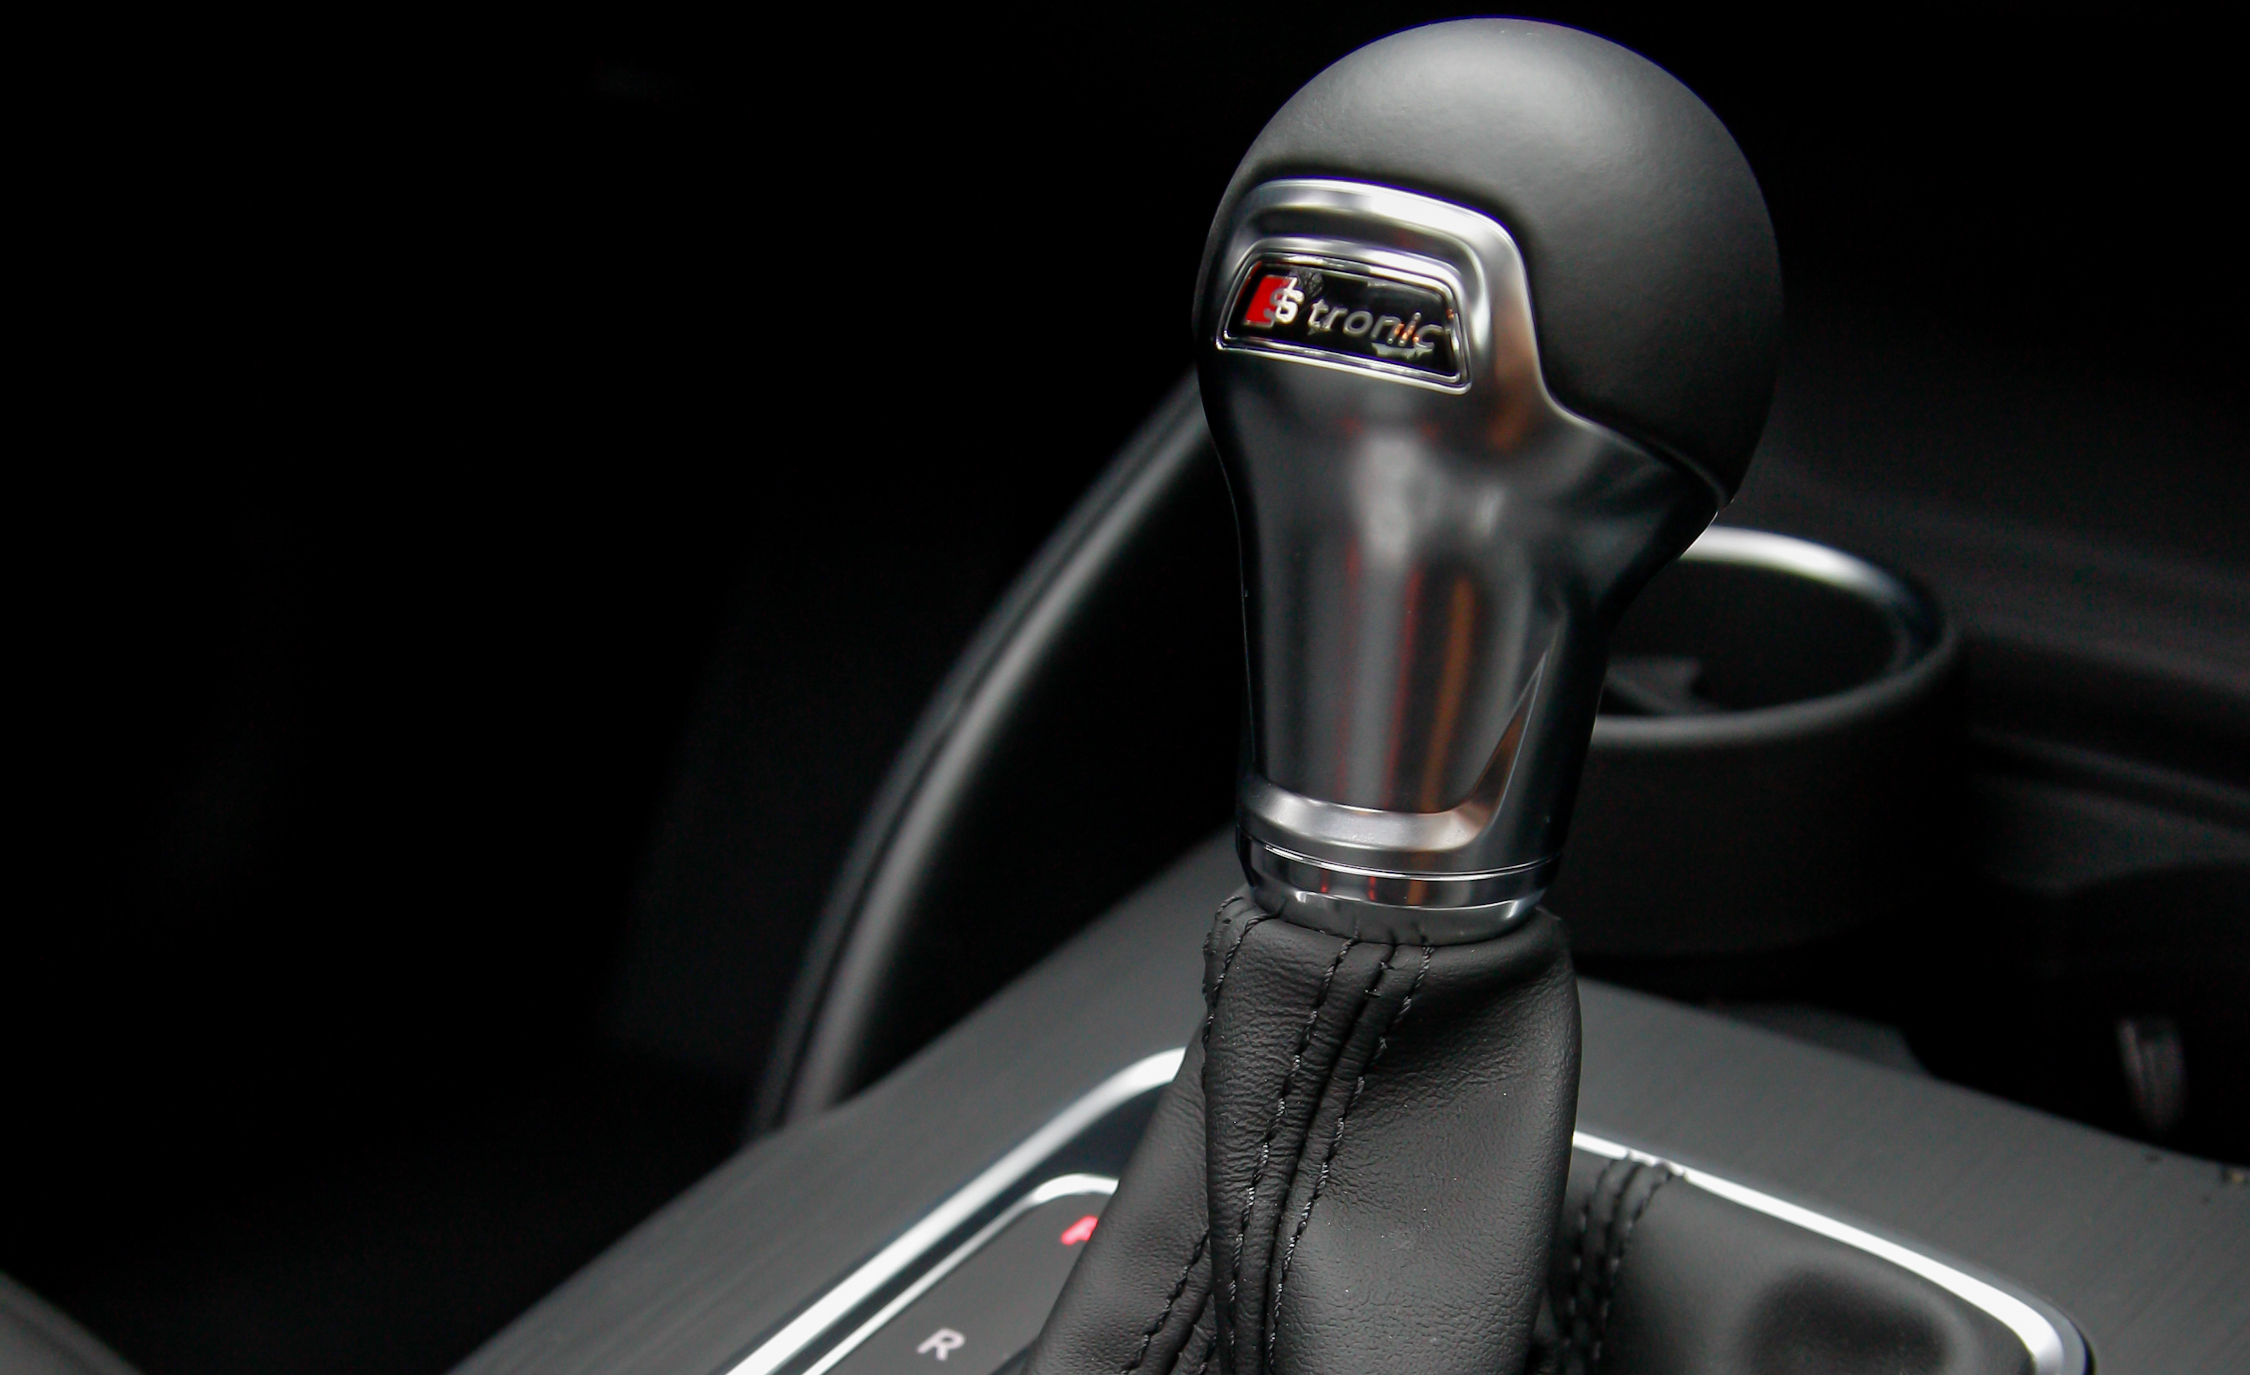 2015 Audi A3 1.8T Interior View Gear Shift Knob (Photo 42 of 50)